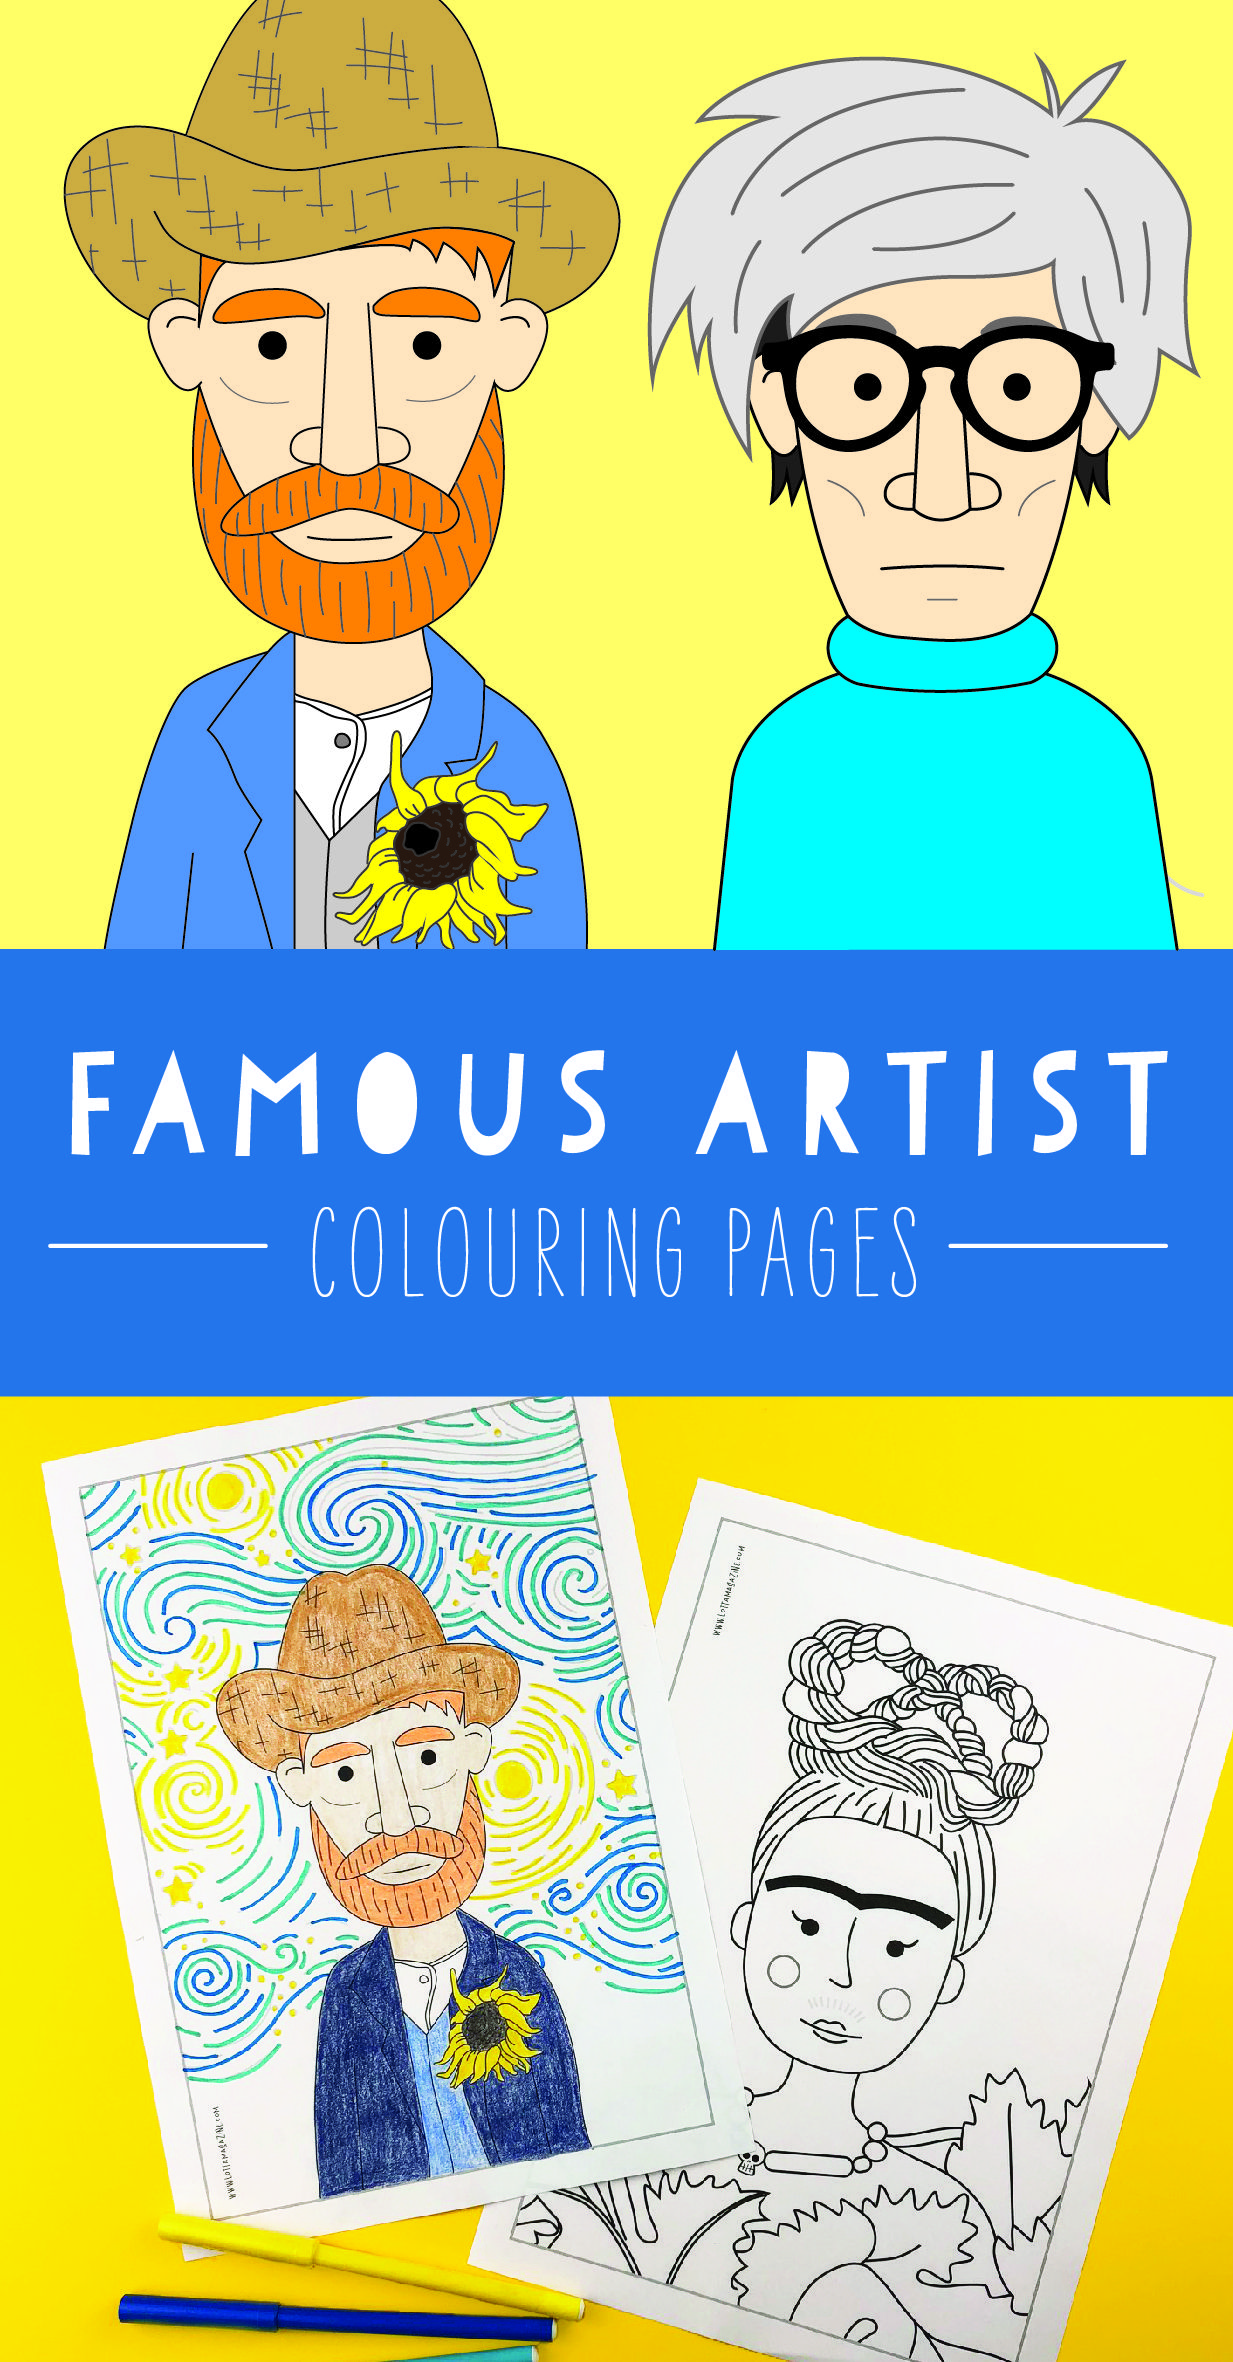 Famous artist colouring pages (coloring pages) featuring Andy Warhol, Frida Kahlo, Vincent Van Gogh, Pablo Picasso and Henri Matisse.  Features kid-friendly recreations of their artworks and famous quotes. #andywarhol